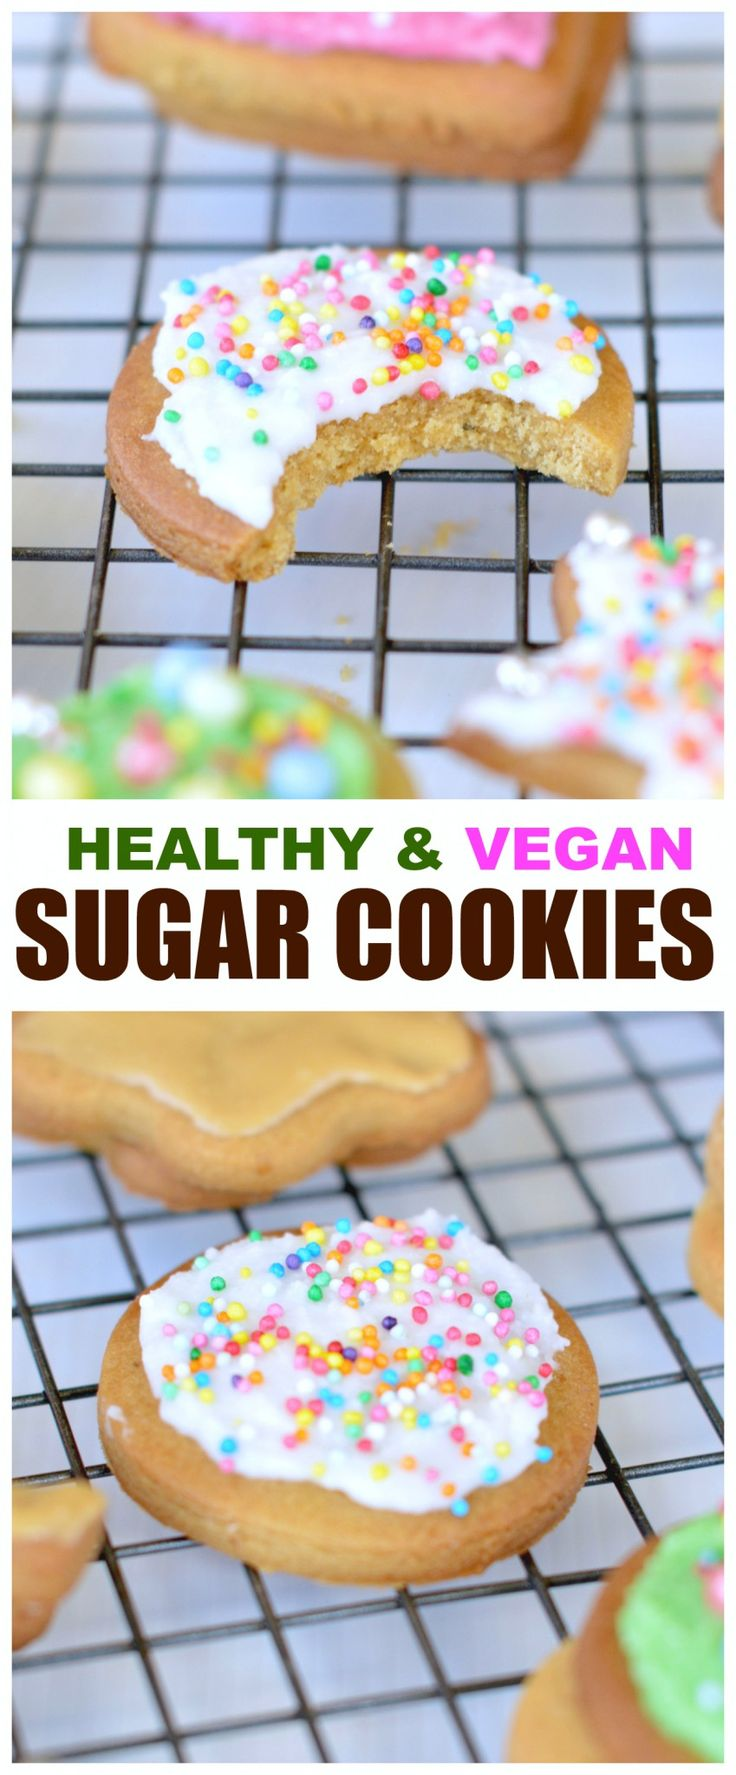 Nothing is better than those Healthy Sugar Cookies, Dairy Free, Egg free, No refined sugar with no chill required and easy edge cutting! AND made with healthy nourishing spelt flour!